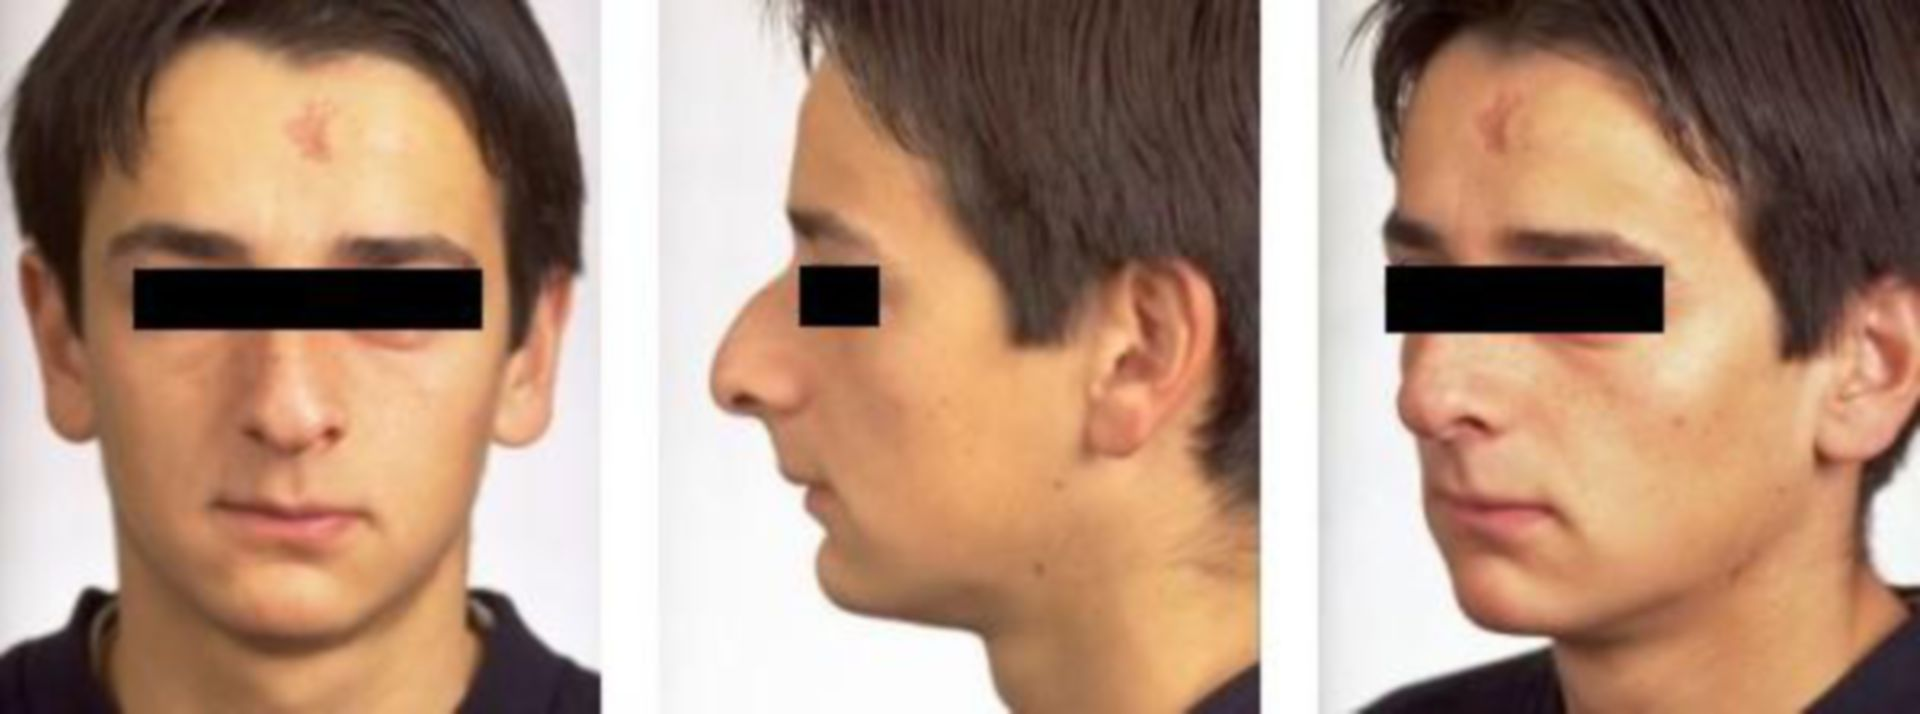 Before nose correction